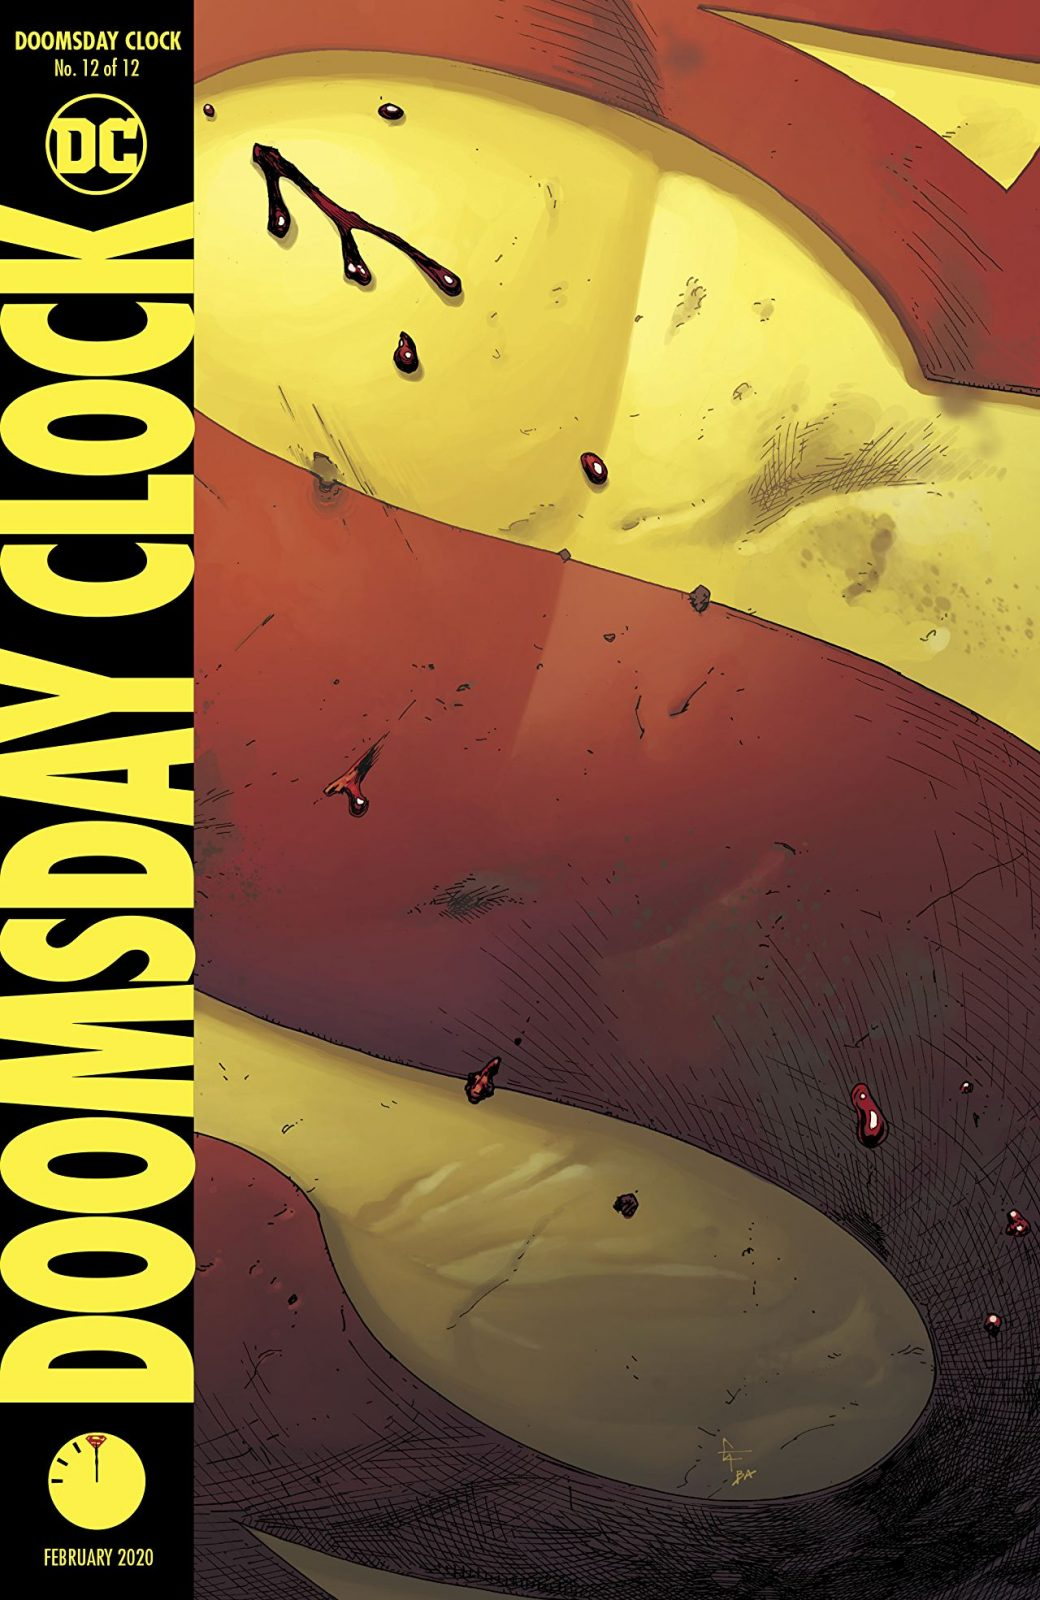 doomsday clock live 2020 july